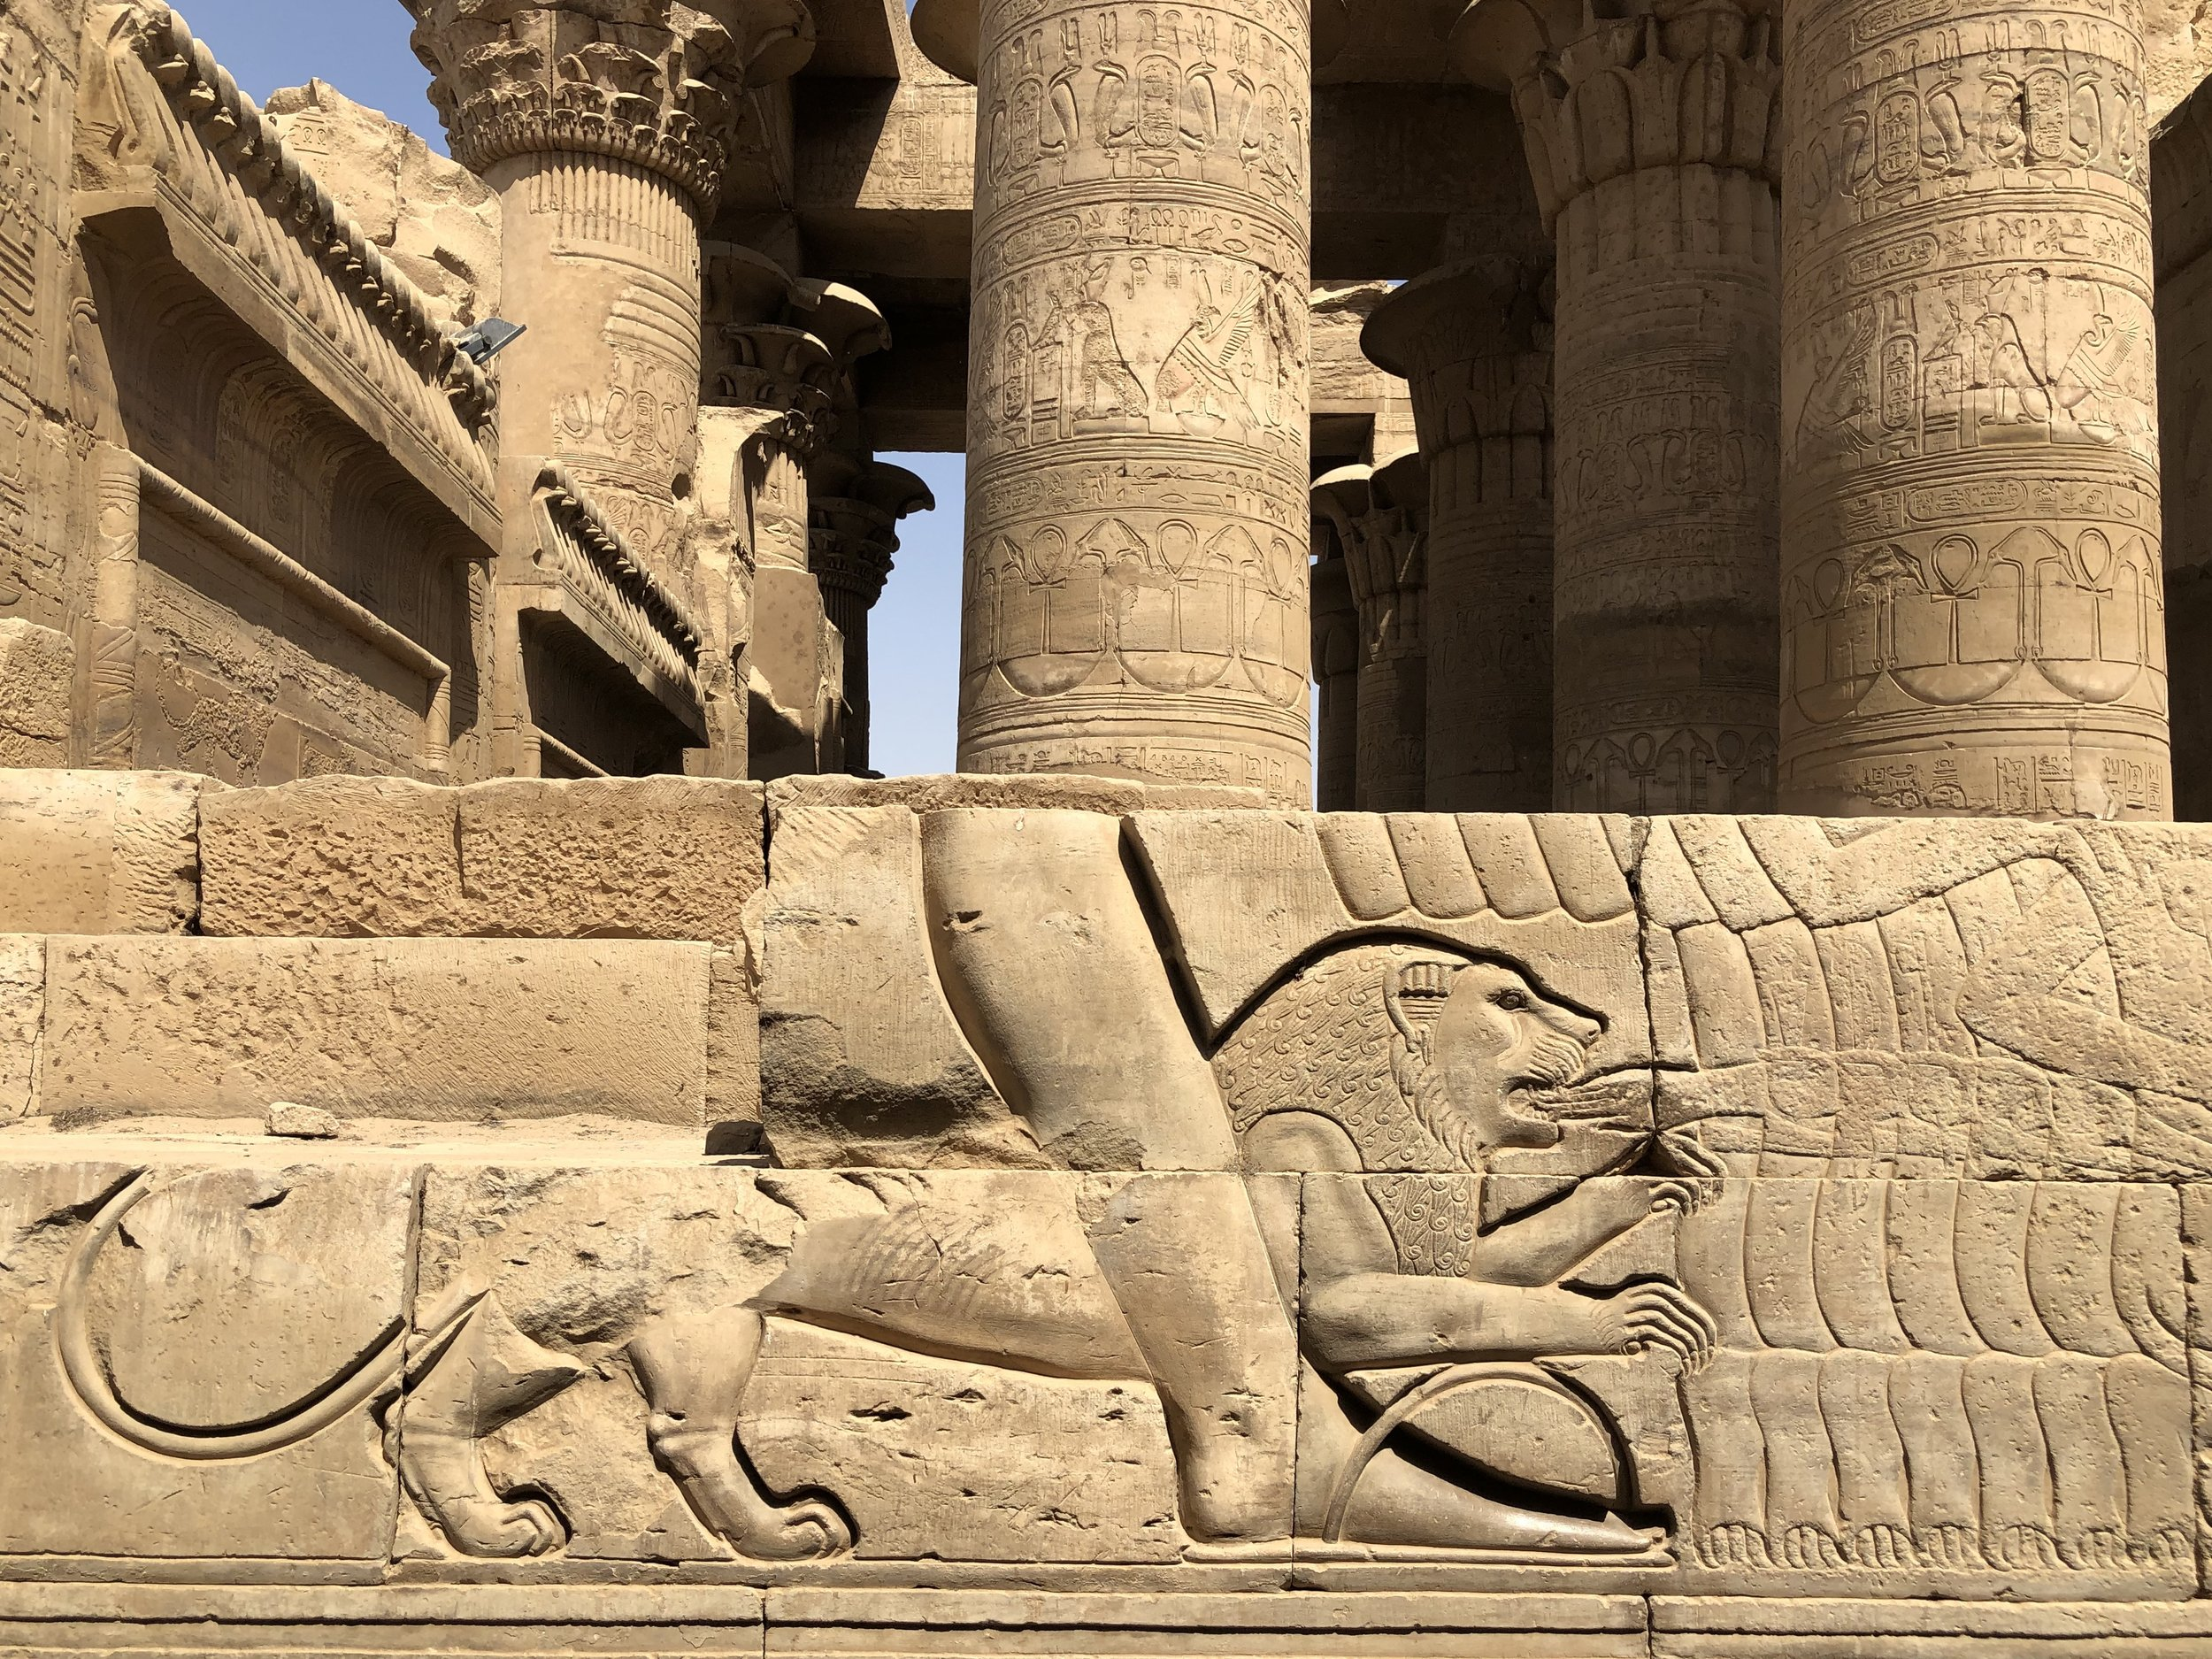 On one side of the temple's exterior, a lion bites a hand